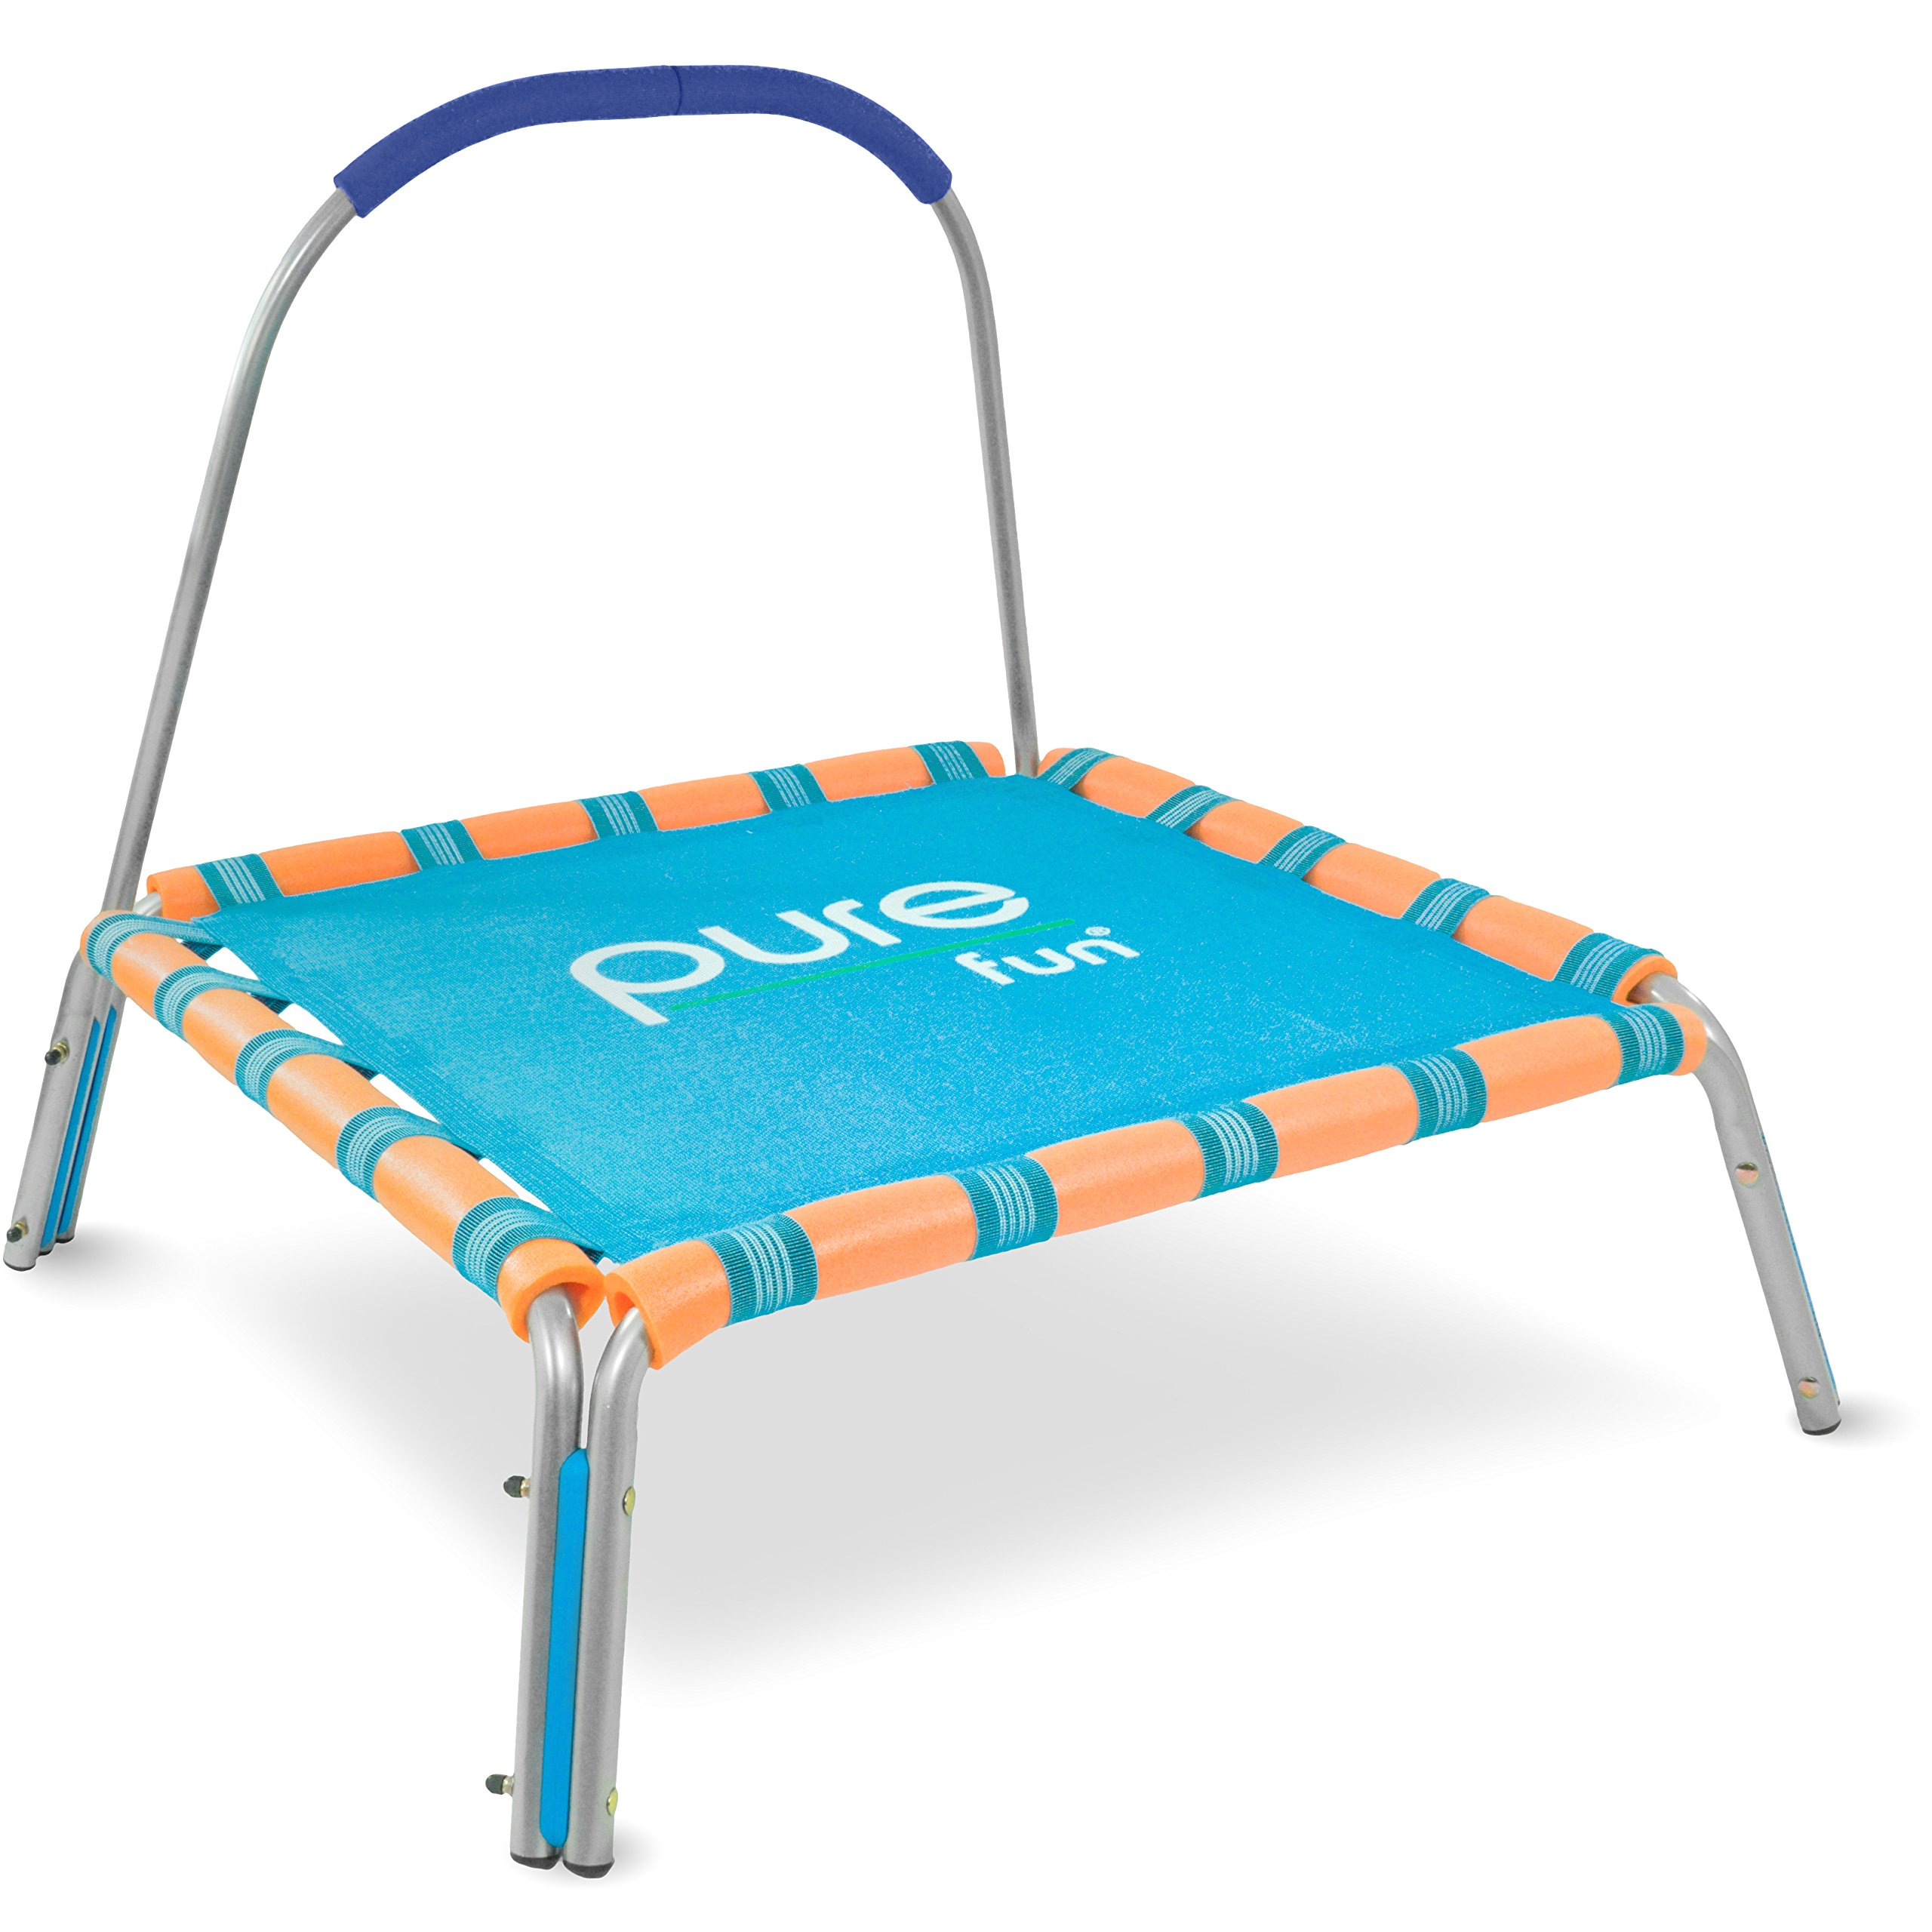 Pure Fun Kids Jumper: 36'' Mini Trampoline Handrail, Youth Ages 3 to 7